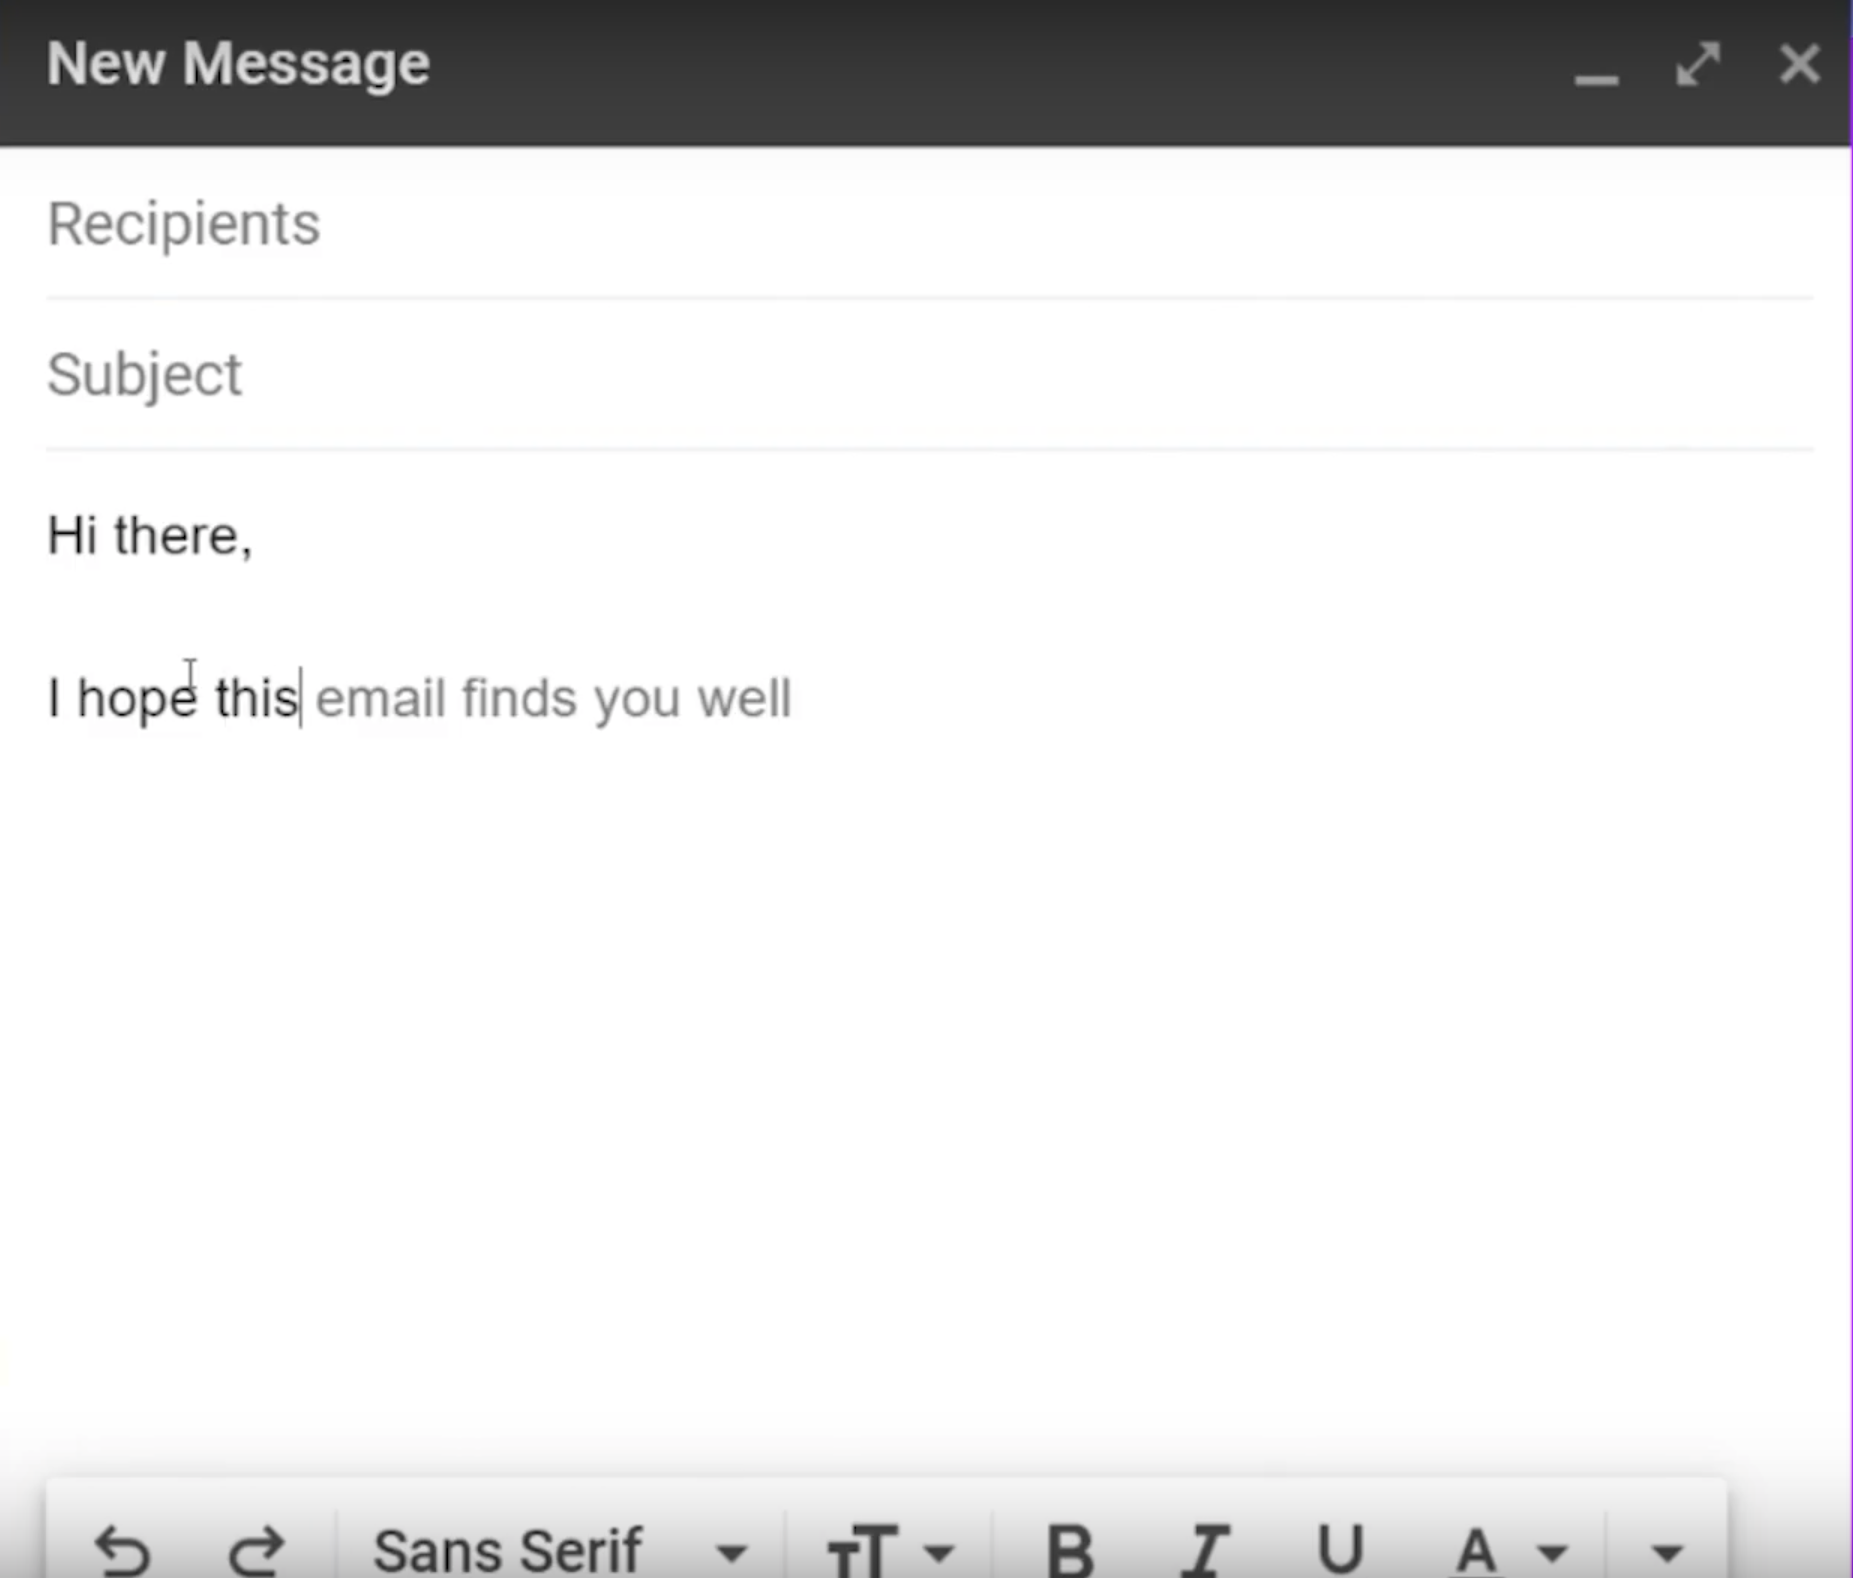 Gmails use of AI to autofill email sentences